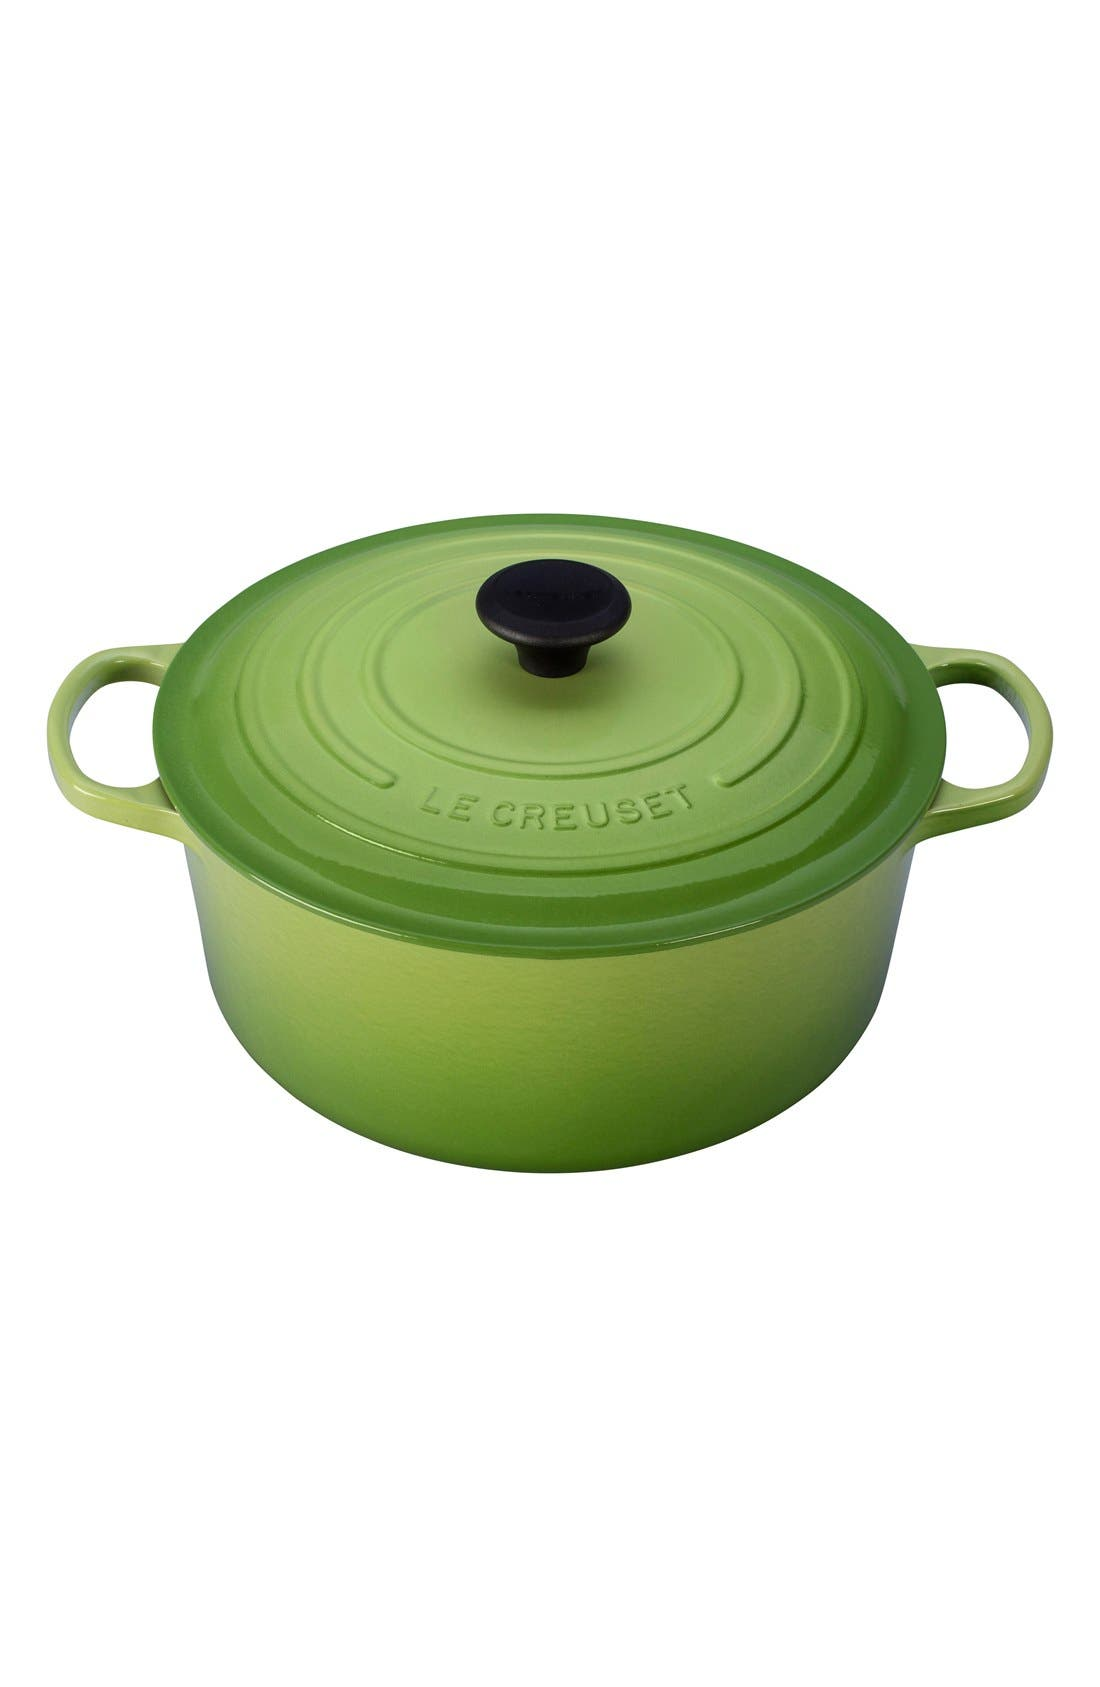 Le Creuset Signature 7 1/4 Quart Round Enamel Cast Iron French/Dutch Oven